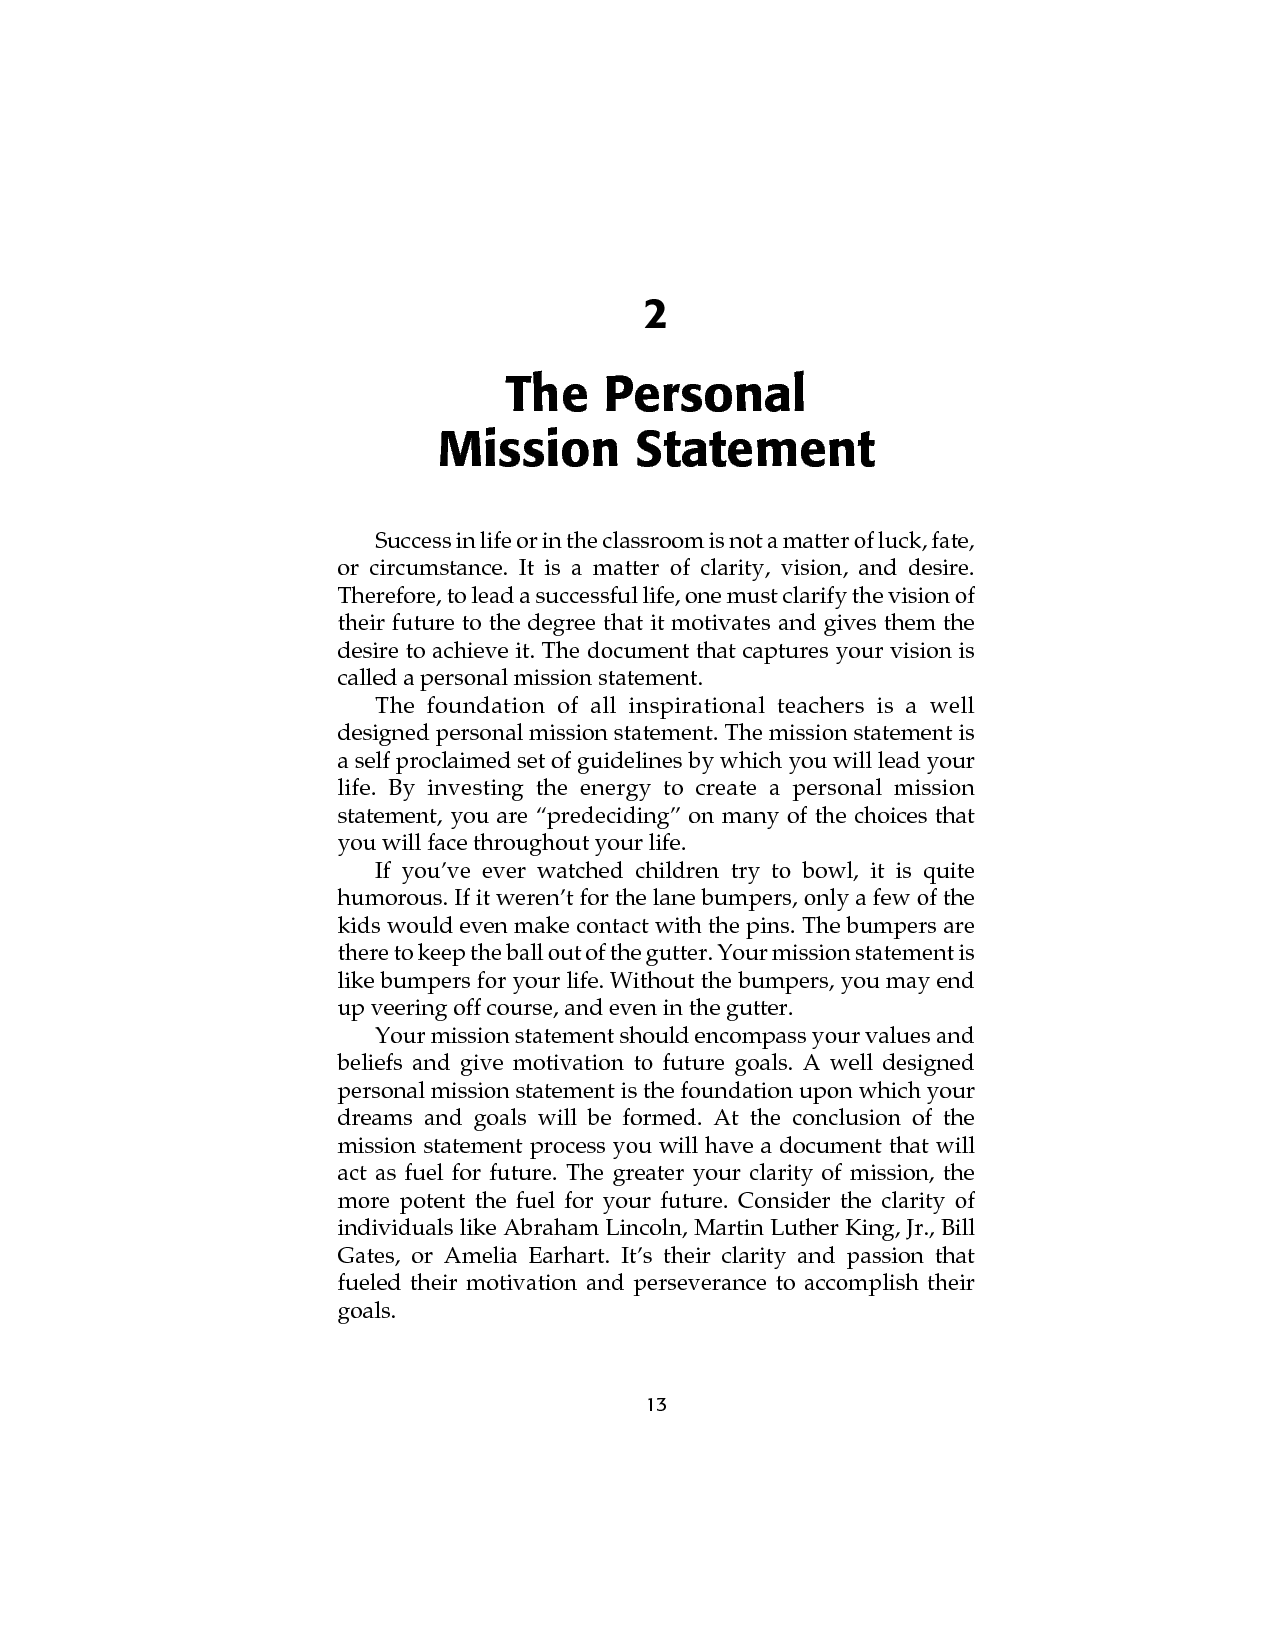 personal vision statements